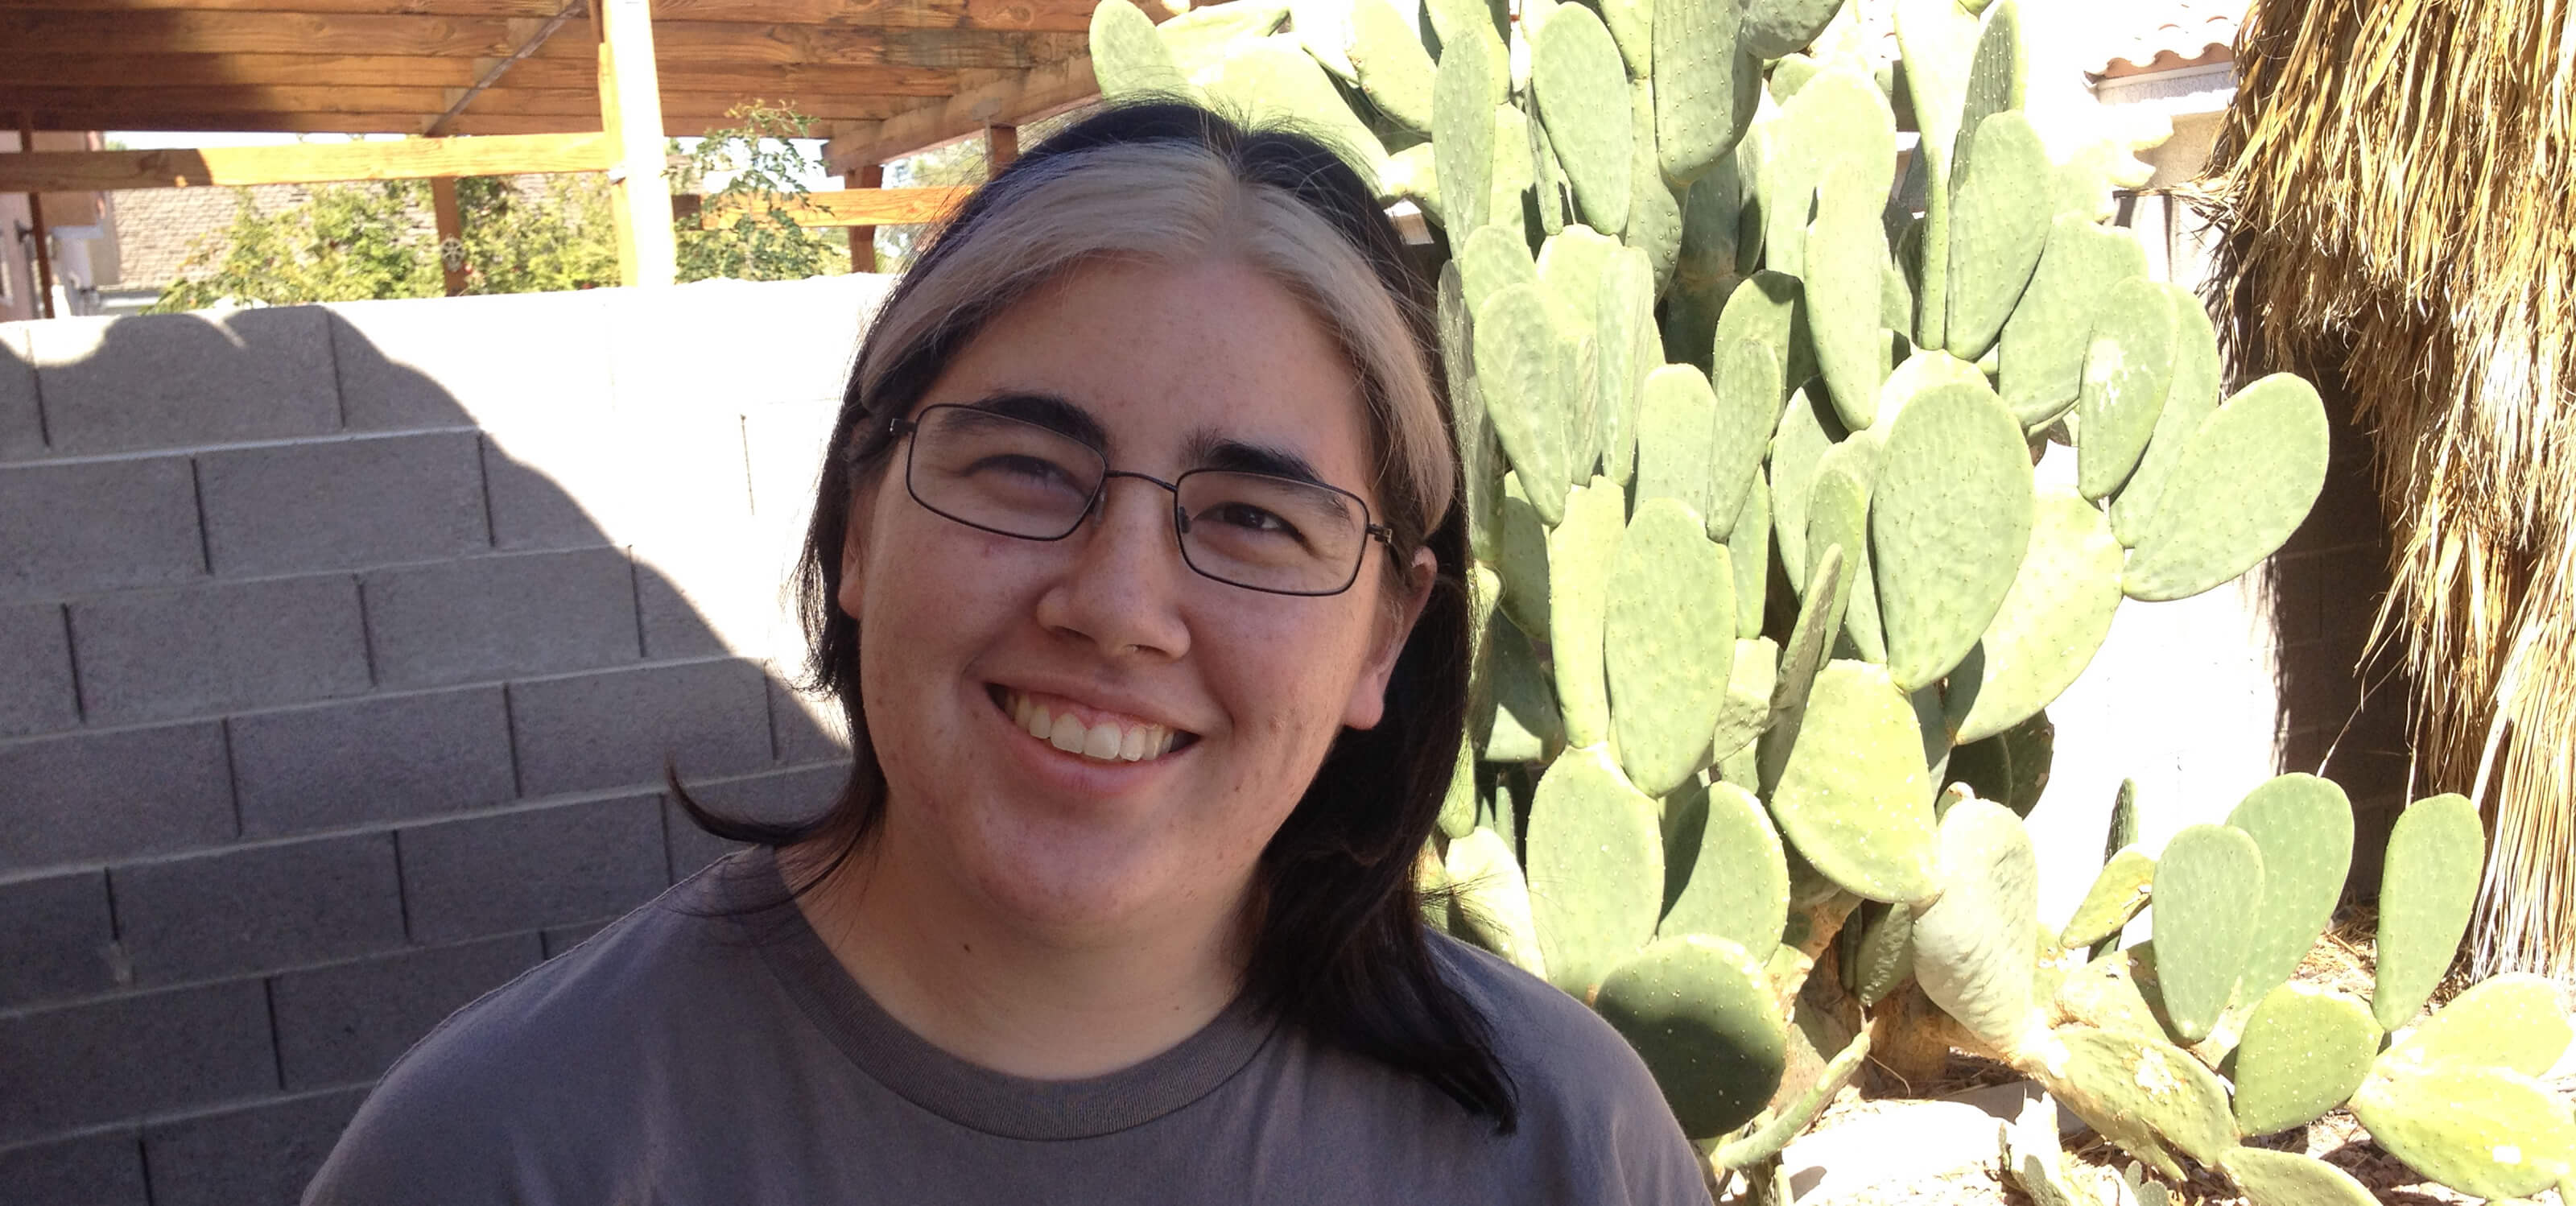 DigiPen graduate and Spry Fox senior software engineer Molly Jameson poses in front of a cactus.